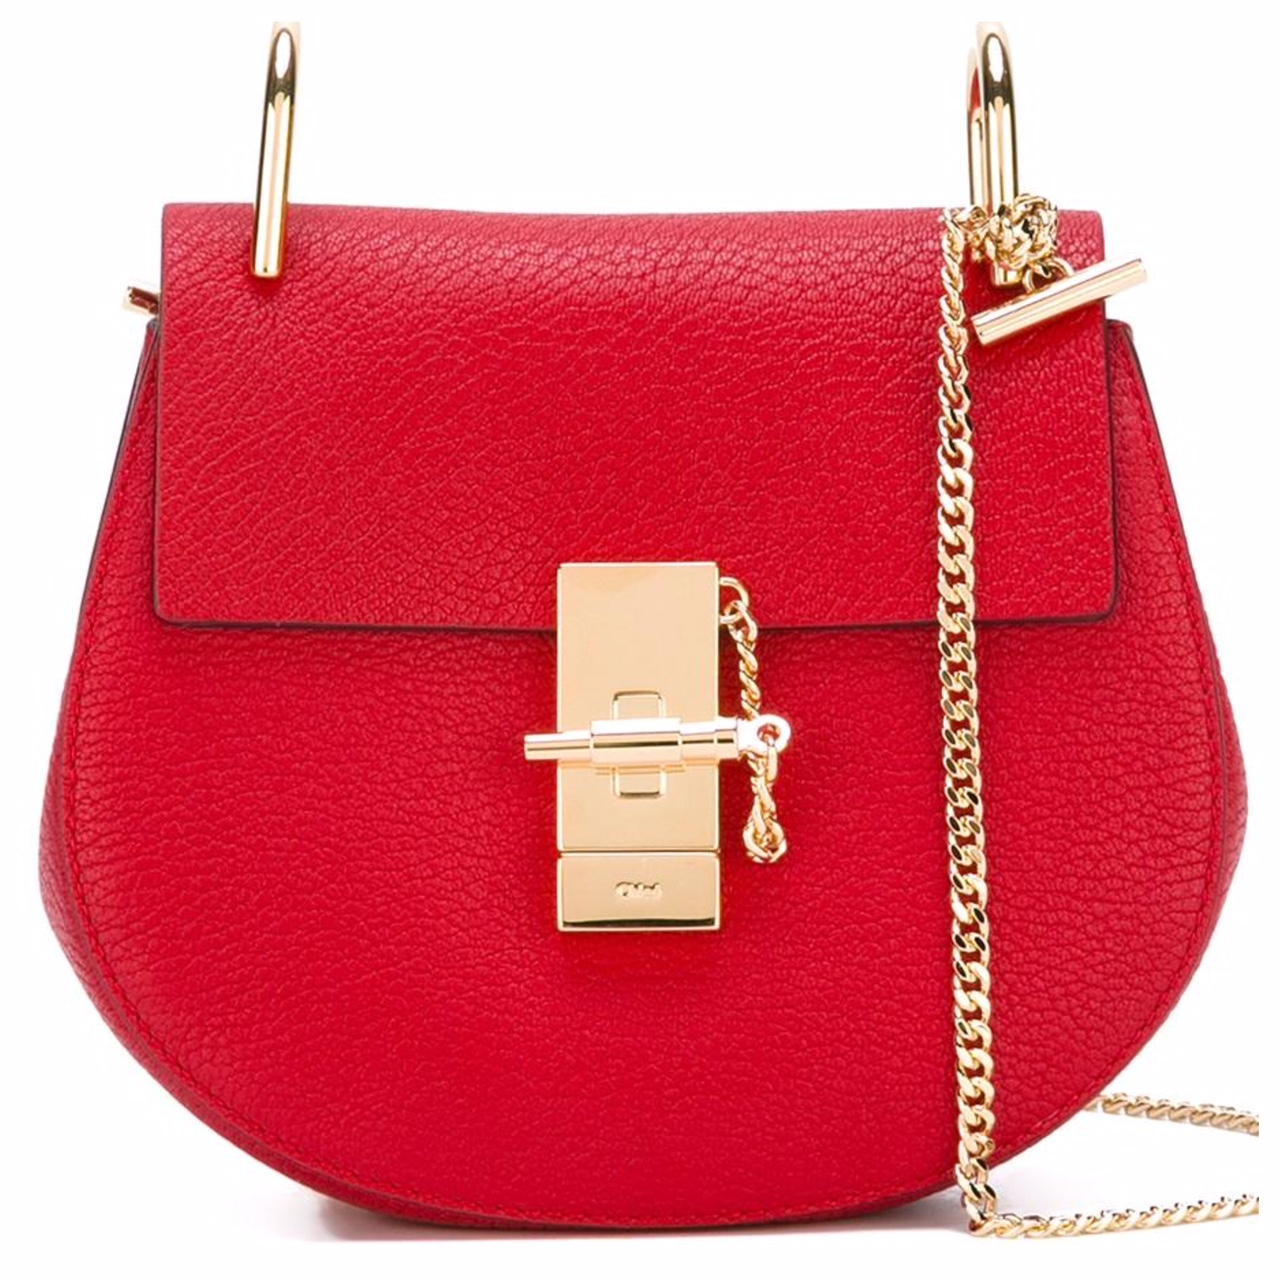 chloe-shoulder-bag